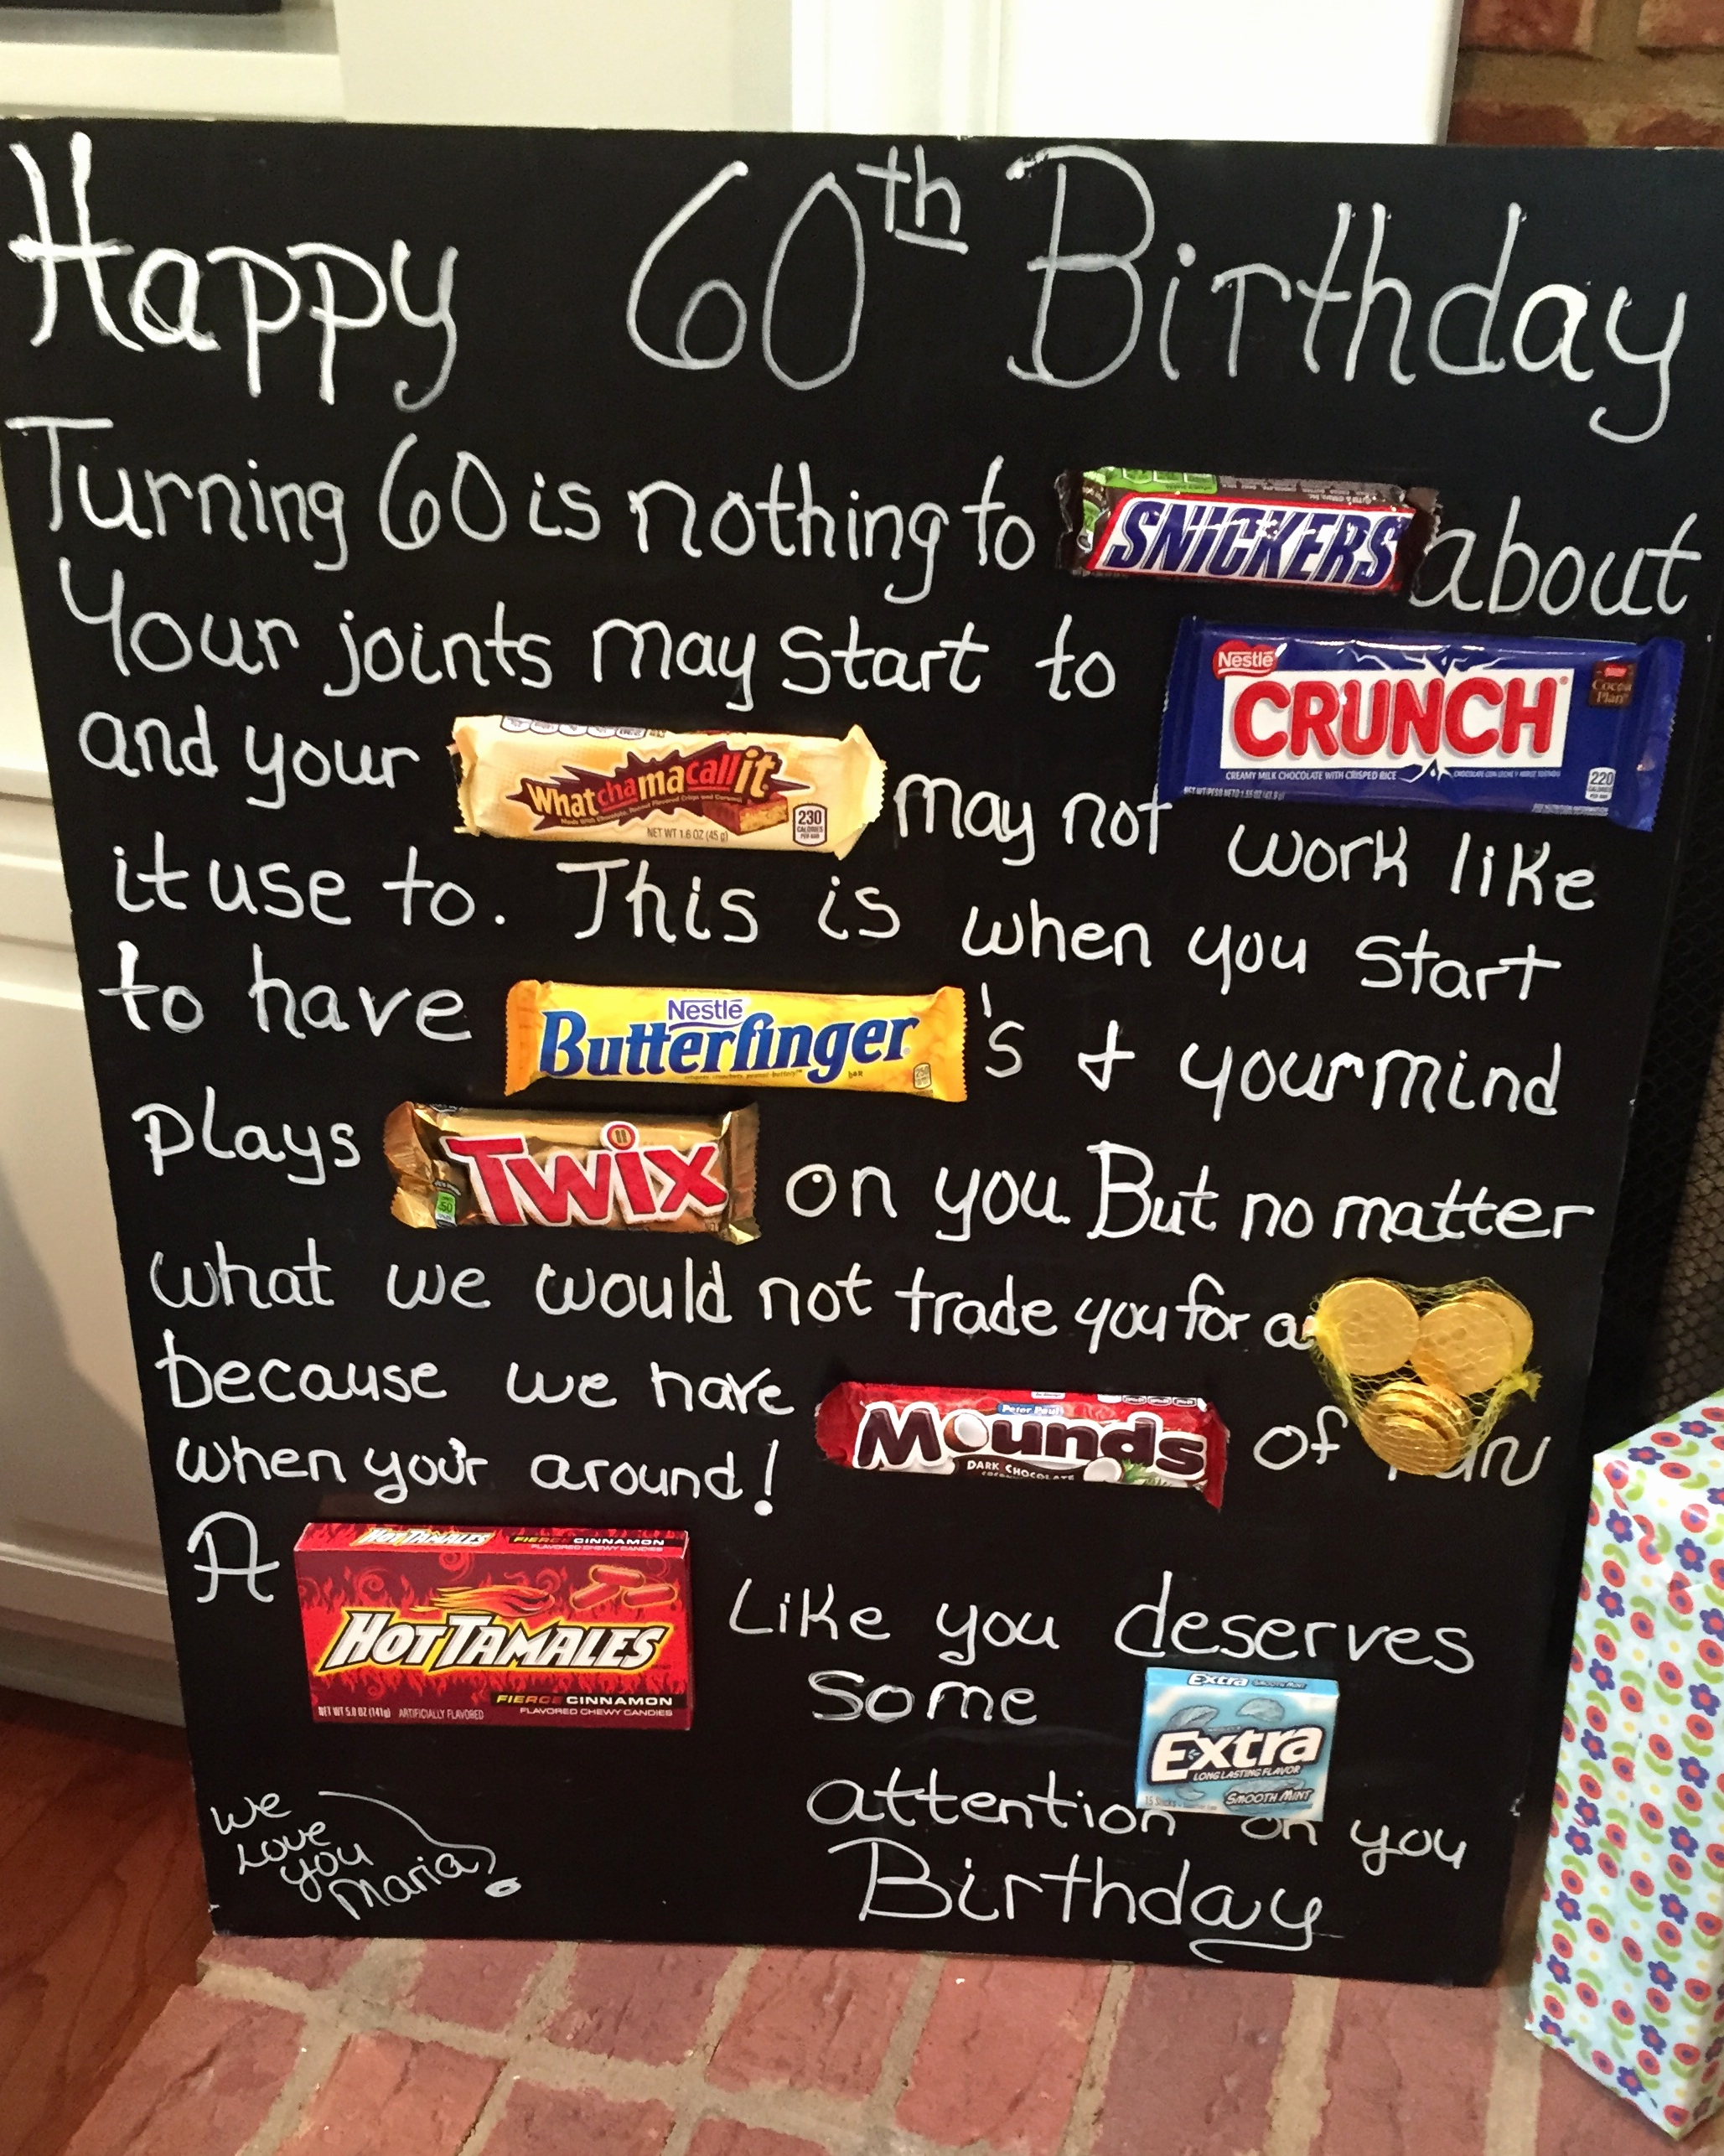 candy bar birthday card sayings ; candy-bar-birthday-card-sayings-lovely-old-age-over-the-hill-60th-birthday-card-poster-using-candy-bars-of-candy-bar-birthday-card-sayings